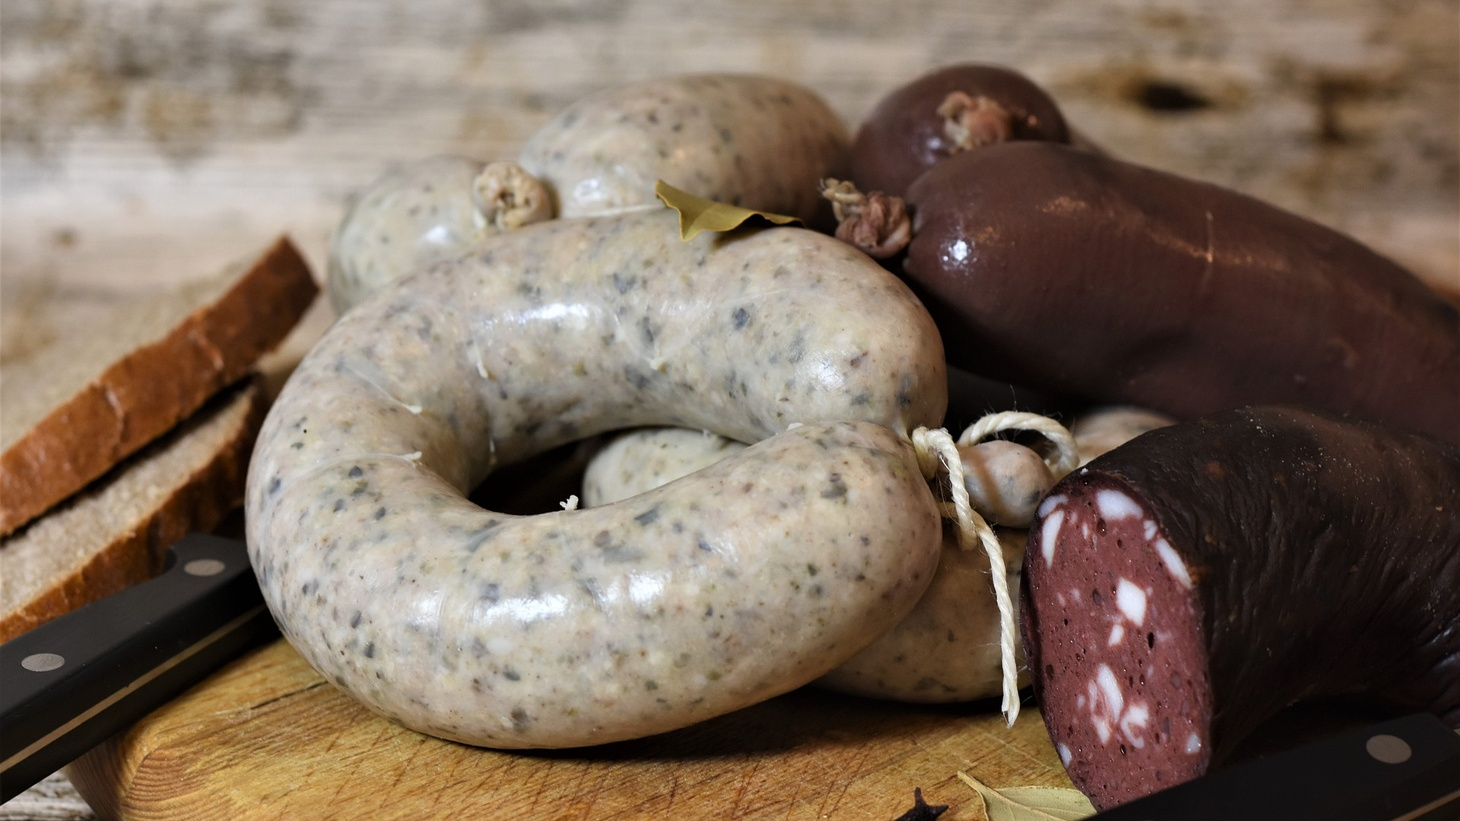 In the Odyssey, Homer describes that war heroes were rewarded with blood sausage, seen here with a liver version.